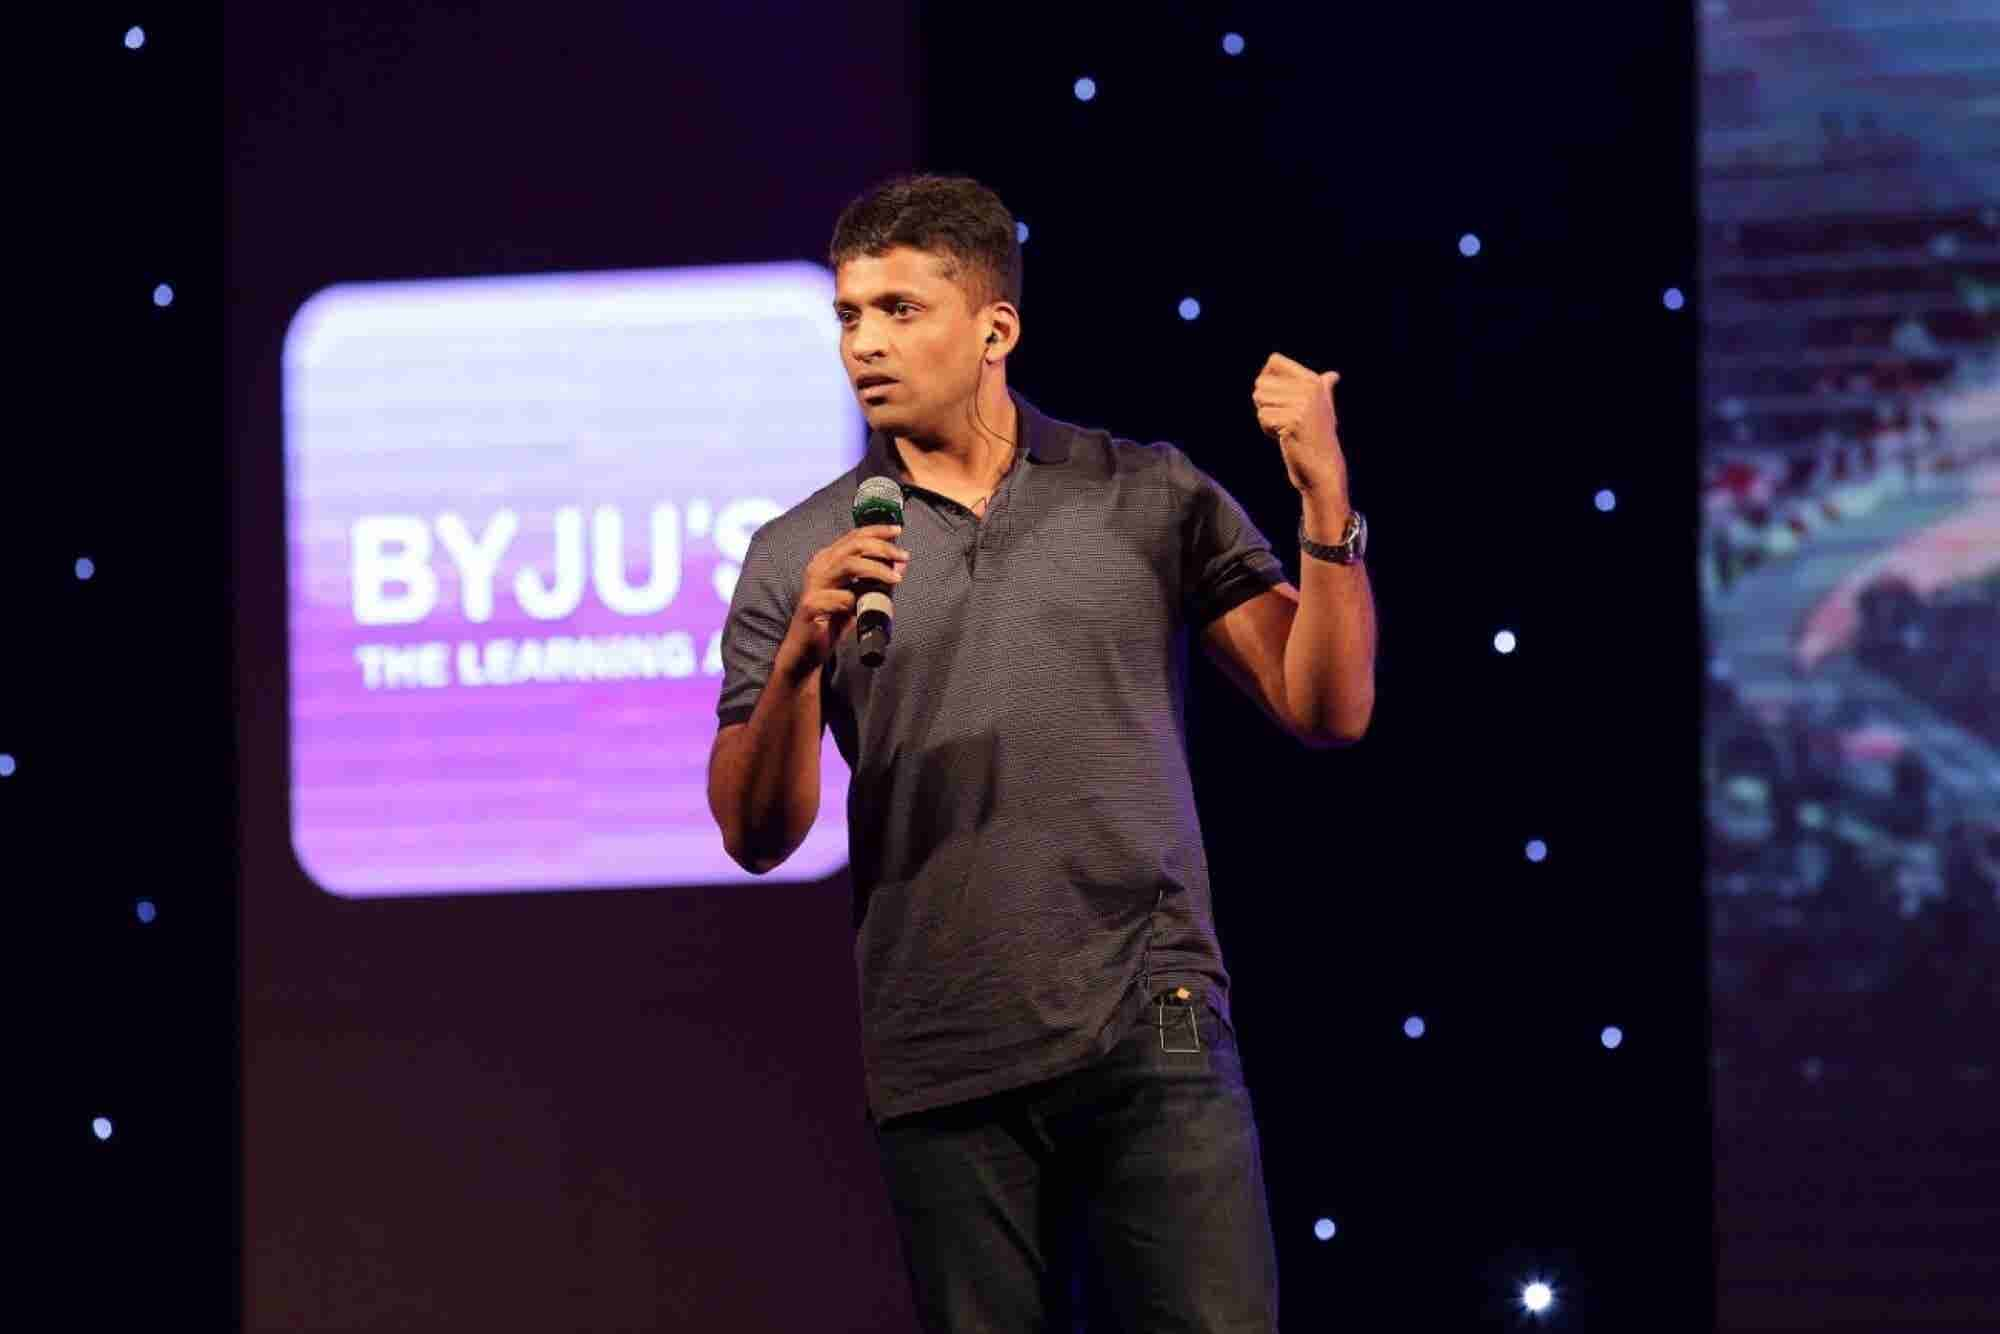 India's Biggest Edtech Entrepreneur Urges Students to Become Life-long...